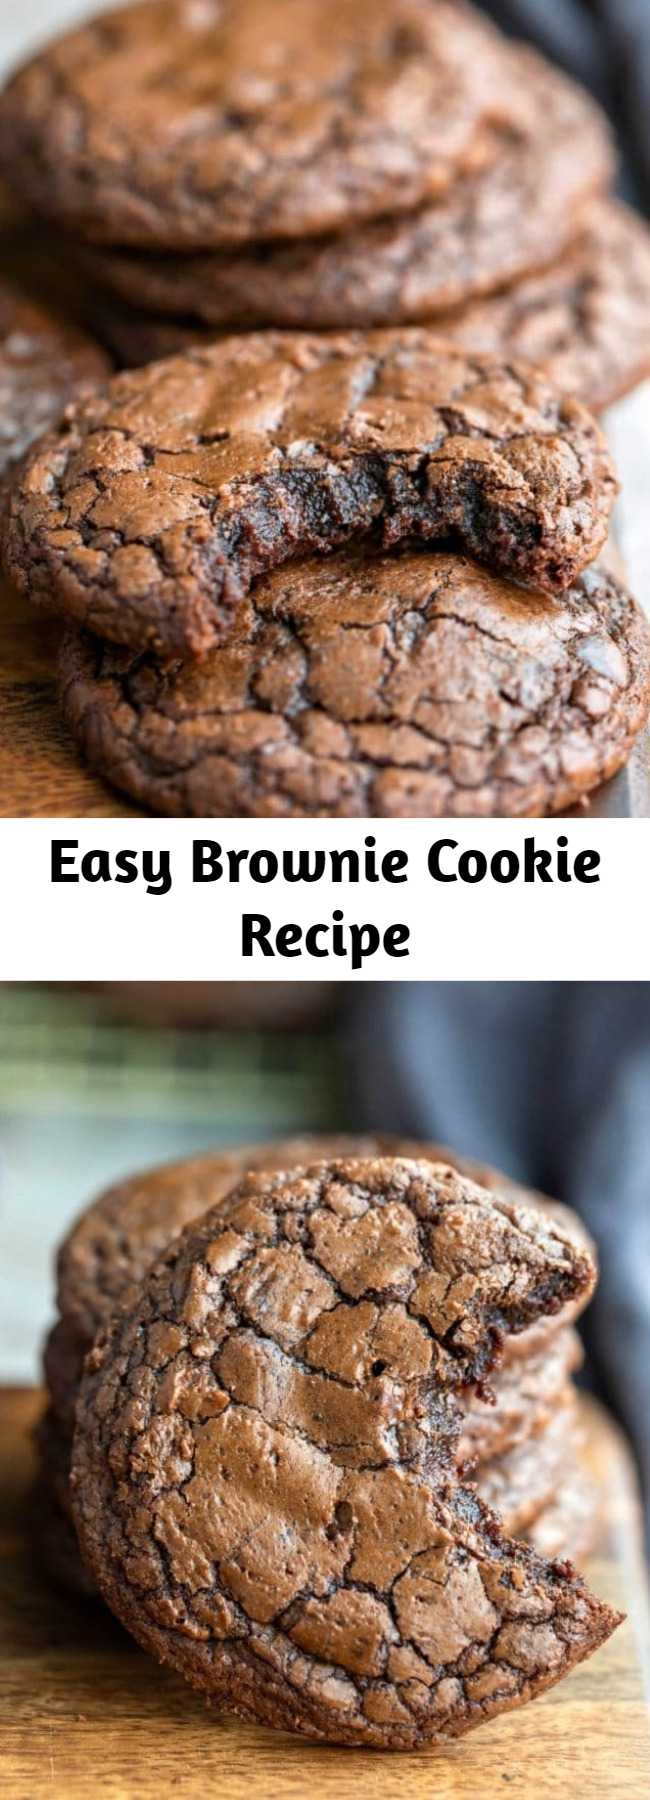 Easy Brownie Cookie Recipe - This brownie cookie recipe is all of the good parts of a brownie- crackly crust, fudgy middles, chewy edges, & intense chocolate flavor -in one easy, homemade cookie recipe. One of the best cookie recipes around!